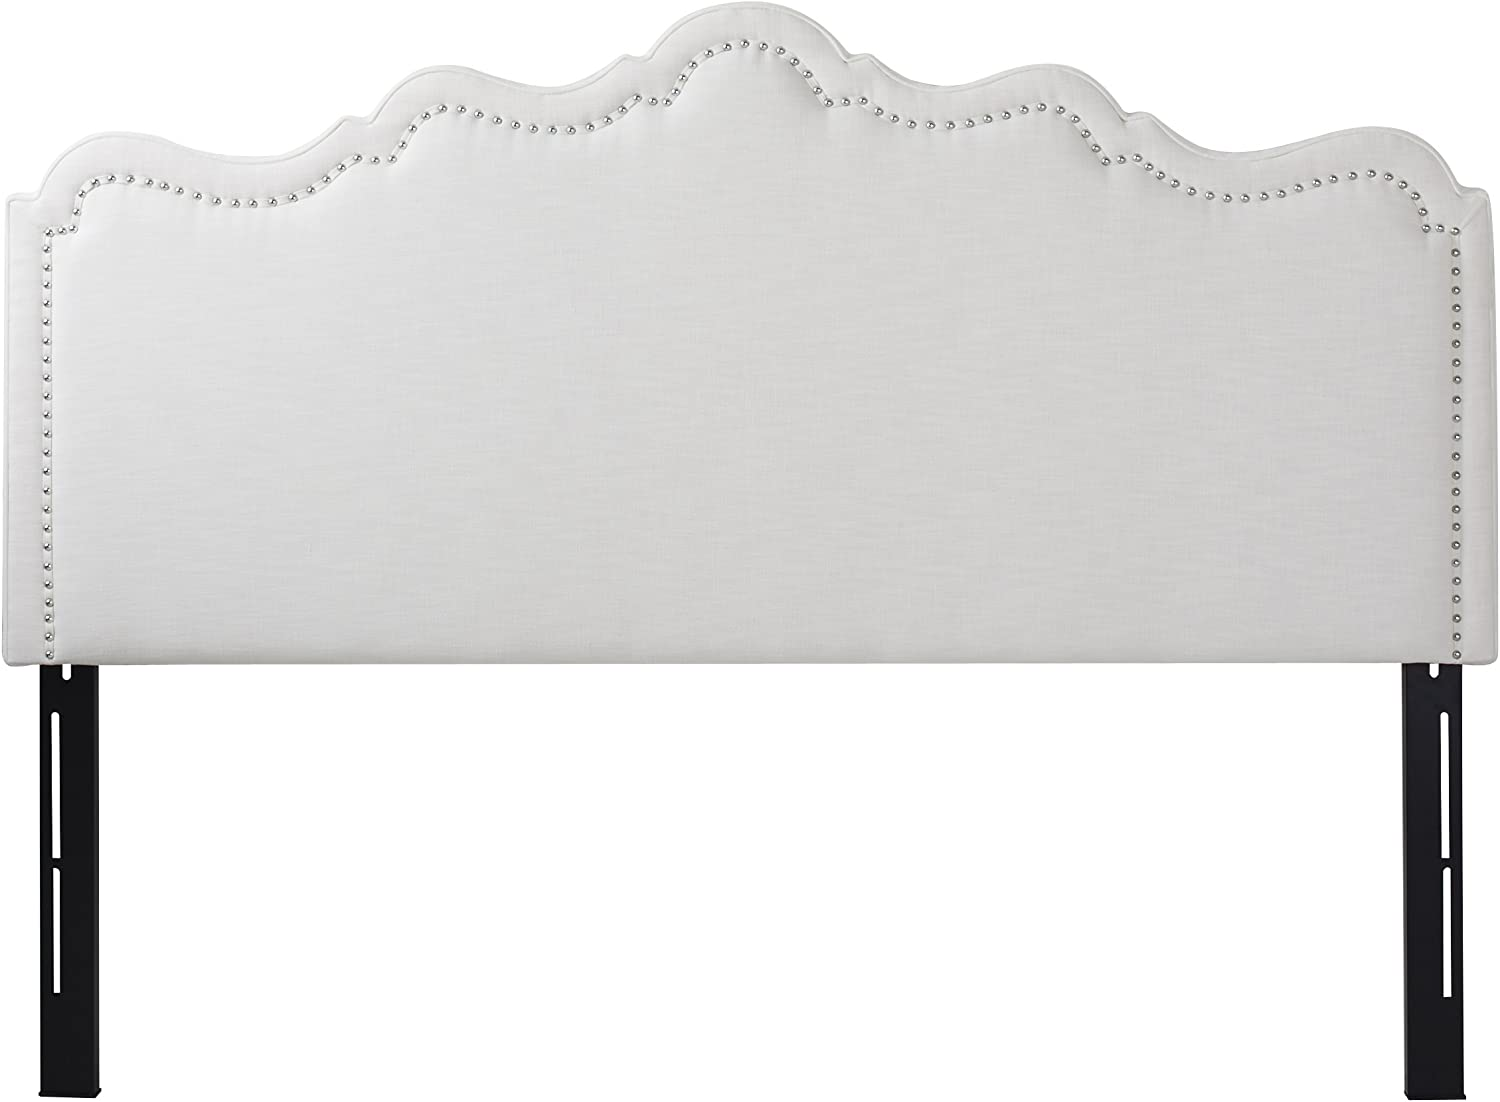 Jennifer Taylor Home Ela Collection Upholstered Nailhead Trim Designed Luxury King Size Size Headboard With Trim, King Size, Star White